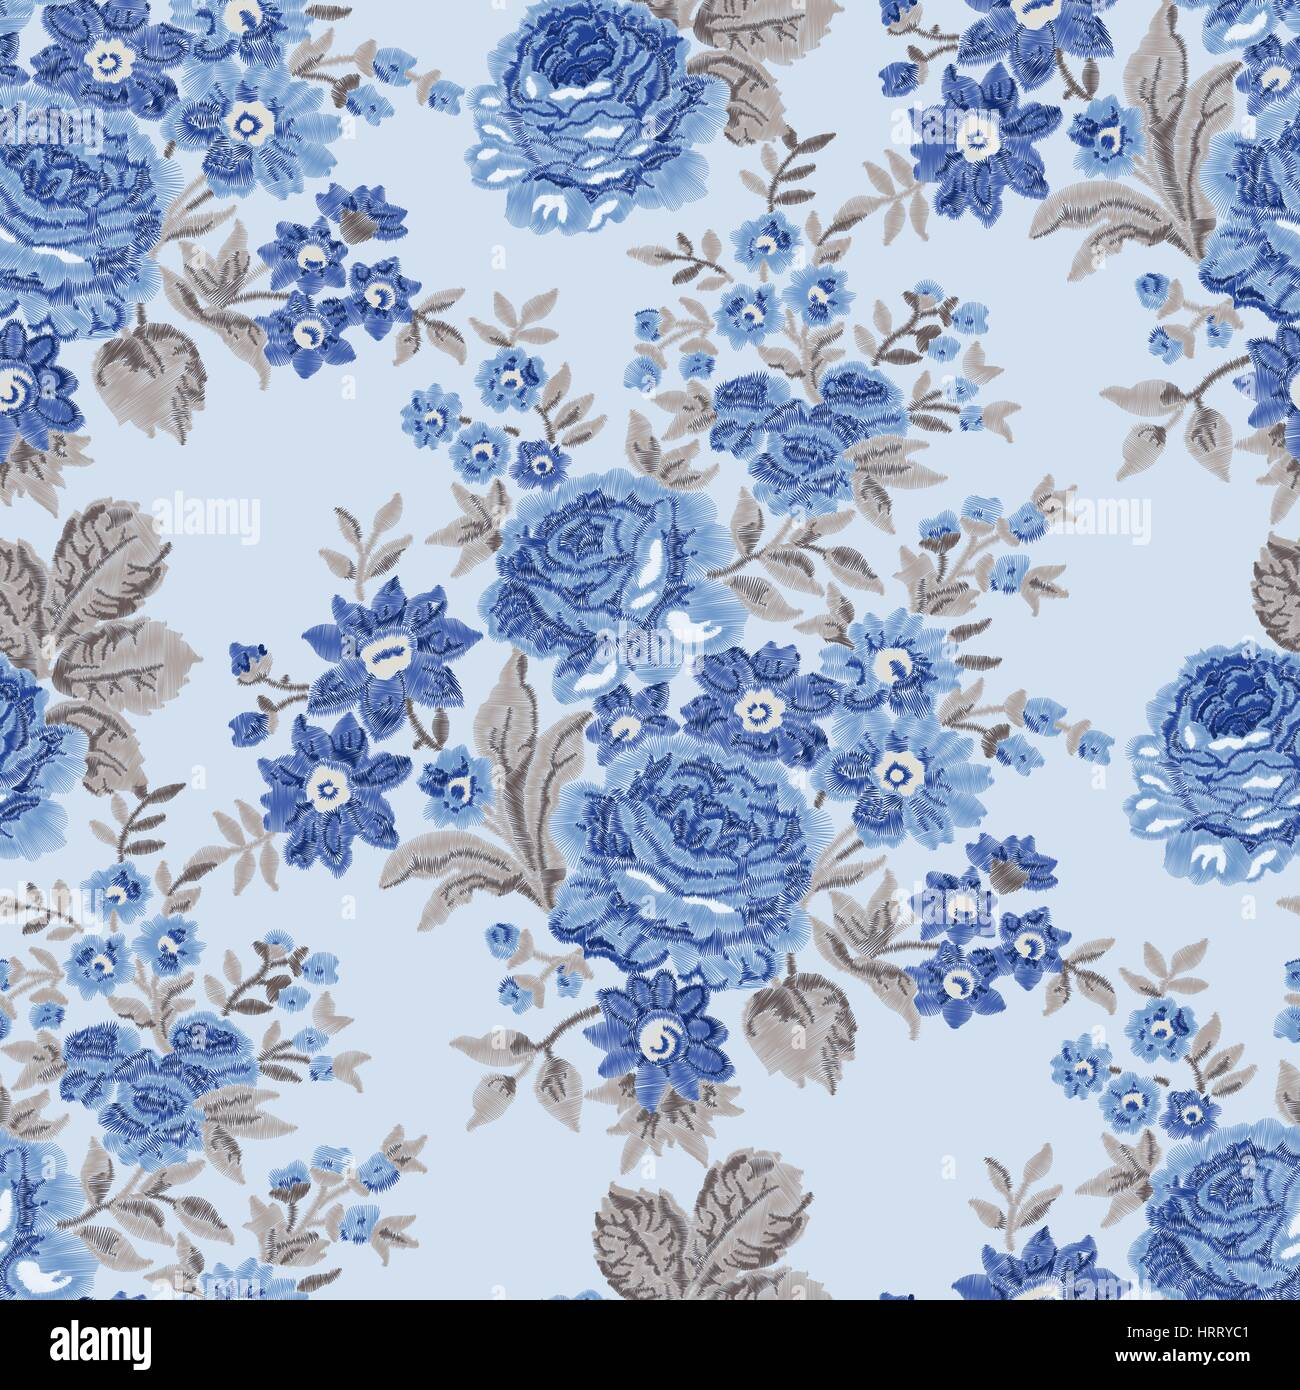 Seamless Embroidered Floral Pattern Luxurious Roses Vintage Blue